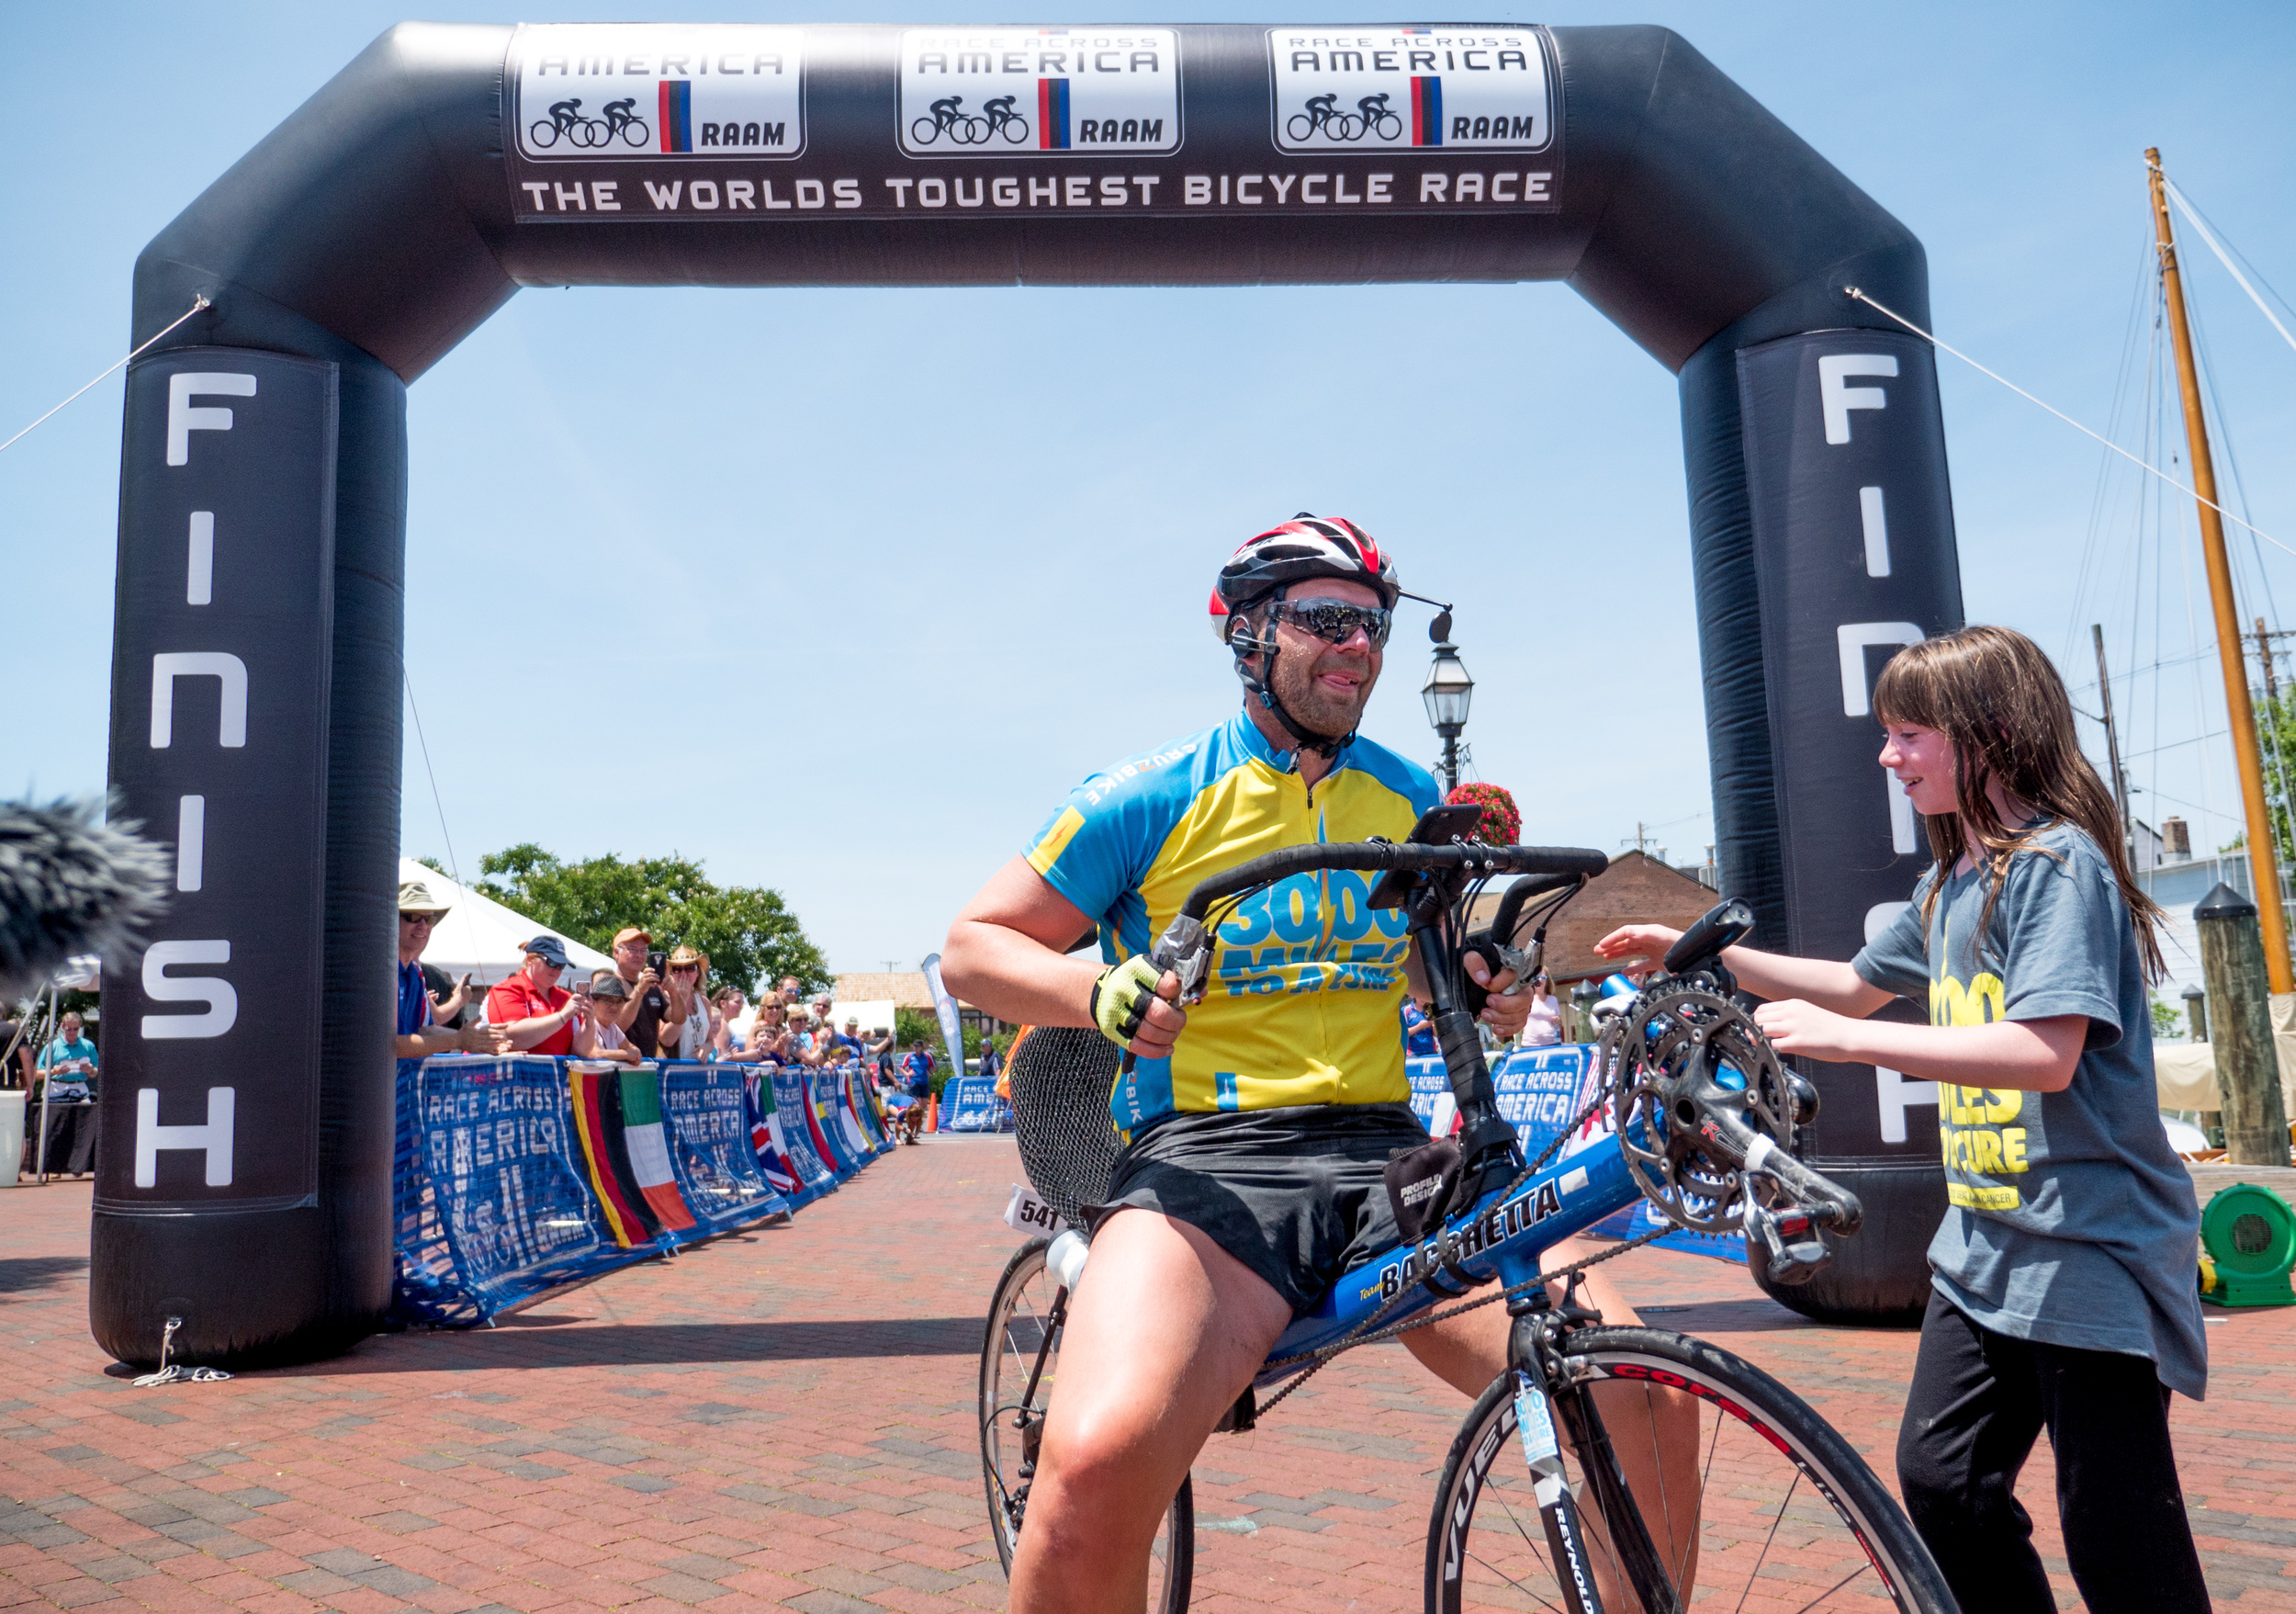 Congratulations Rob. You turned the hardest cycling race in the world into a 12-day traveling party, and cross the finish line in time. Everyone was blessed to watch you grow on your journey and help you get through it. We can't wait to support you on your next ultra-event.